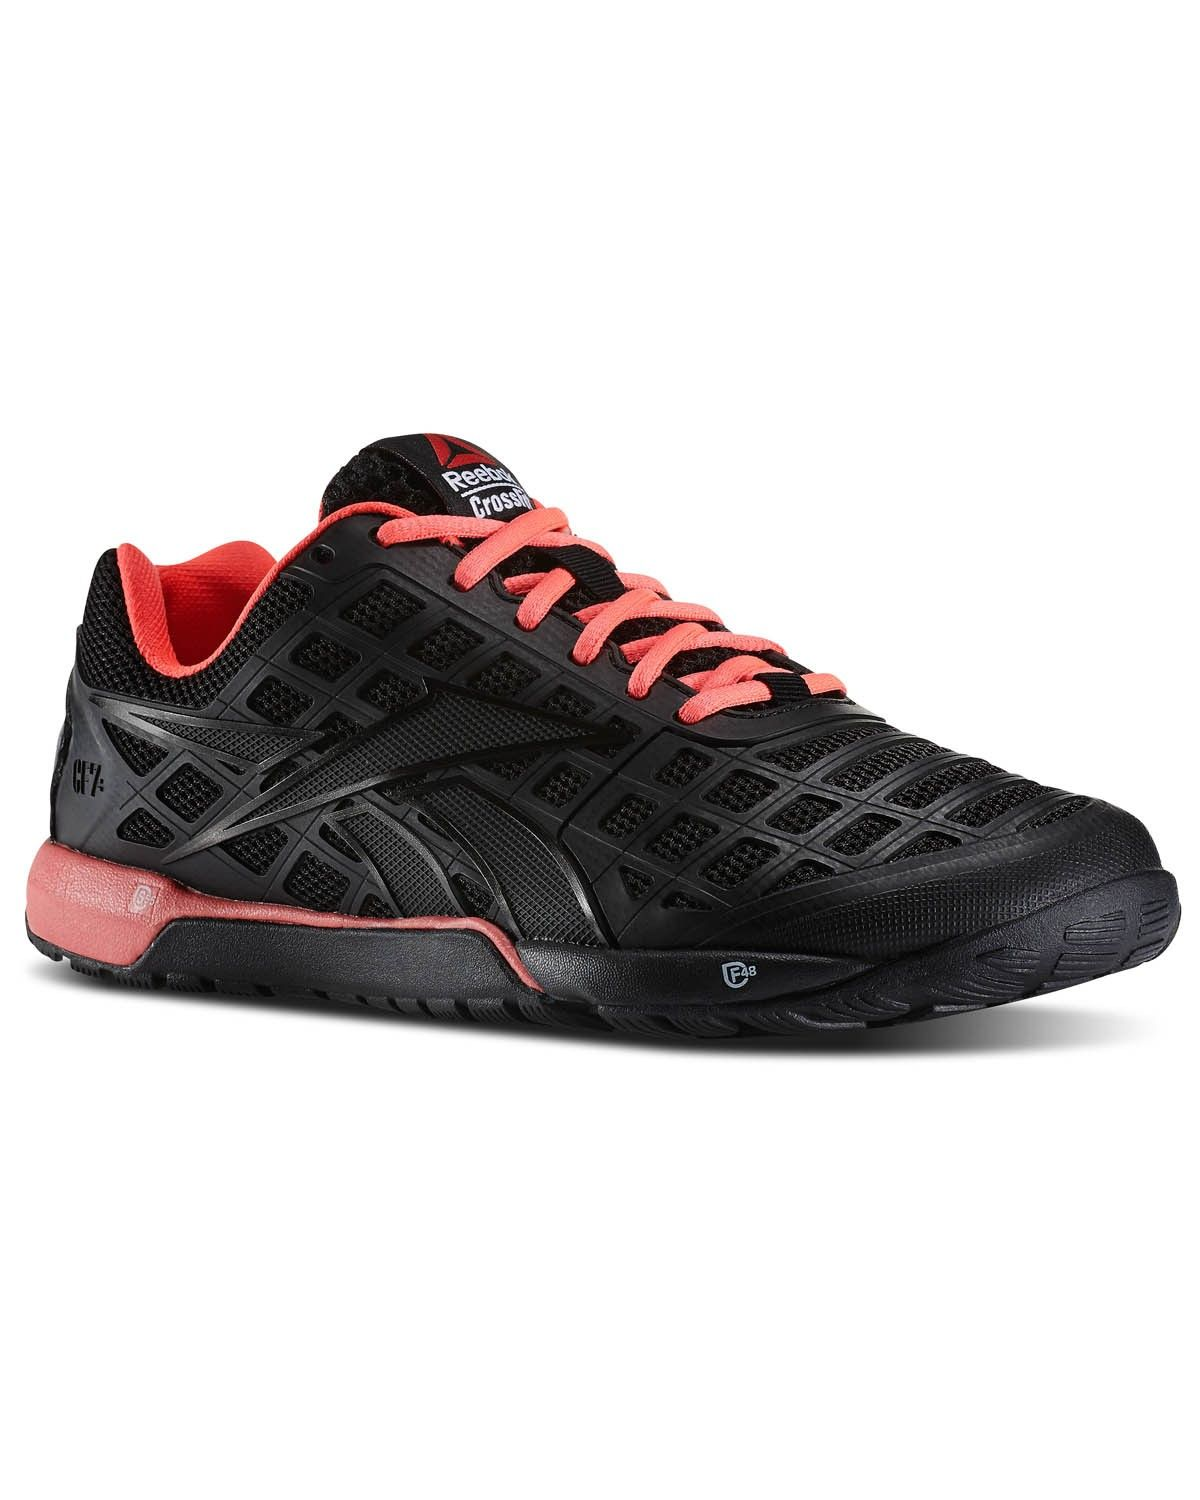 be187954852a9a Womens Reebok CrossFit Nano 3.0 my next ones That I will get ) but can t  wait for my lively red present❤ ❤ ❤️